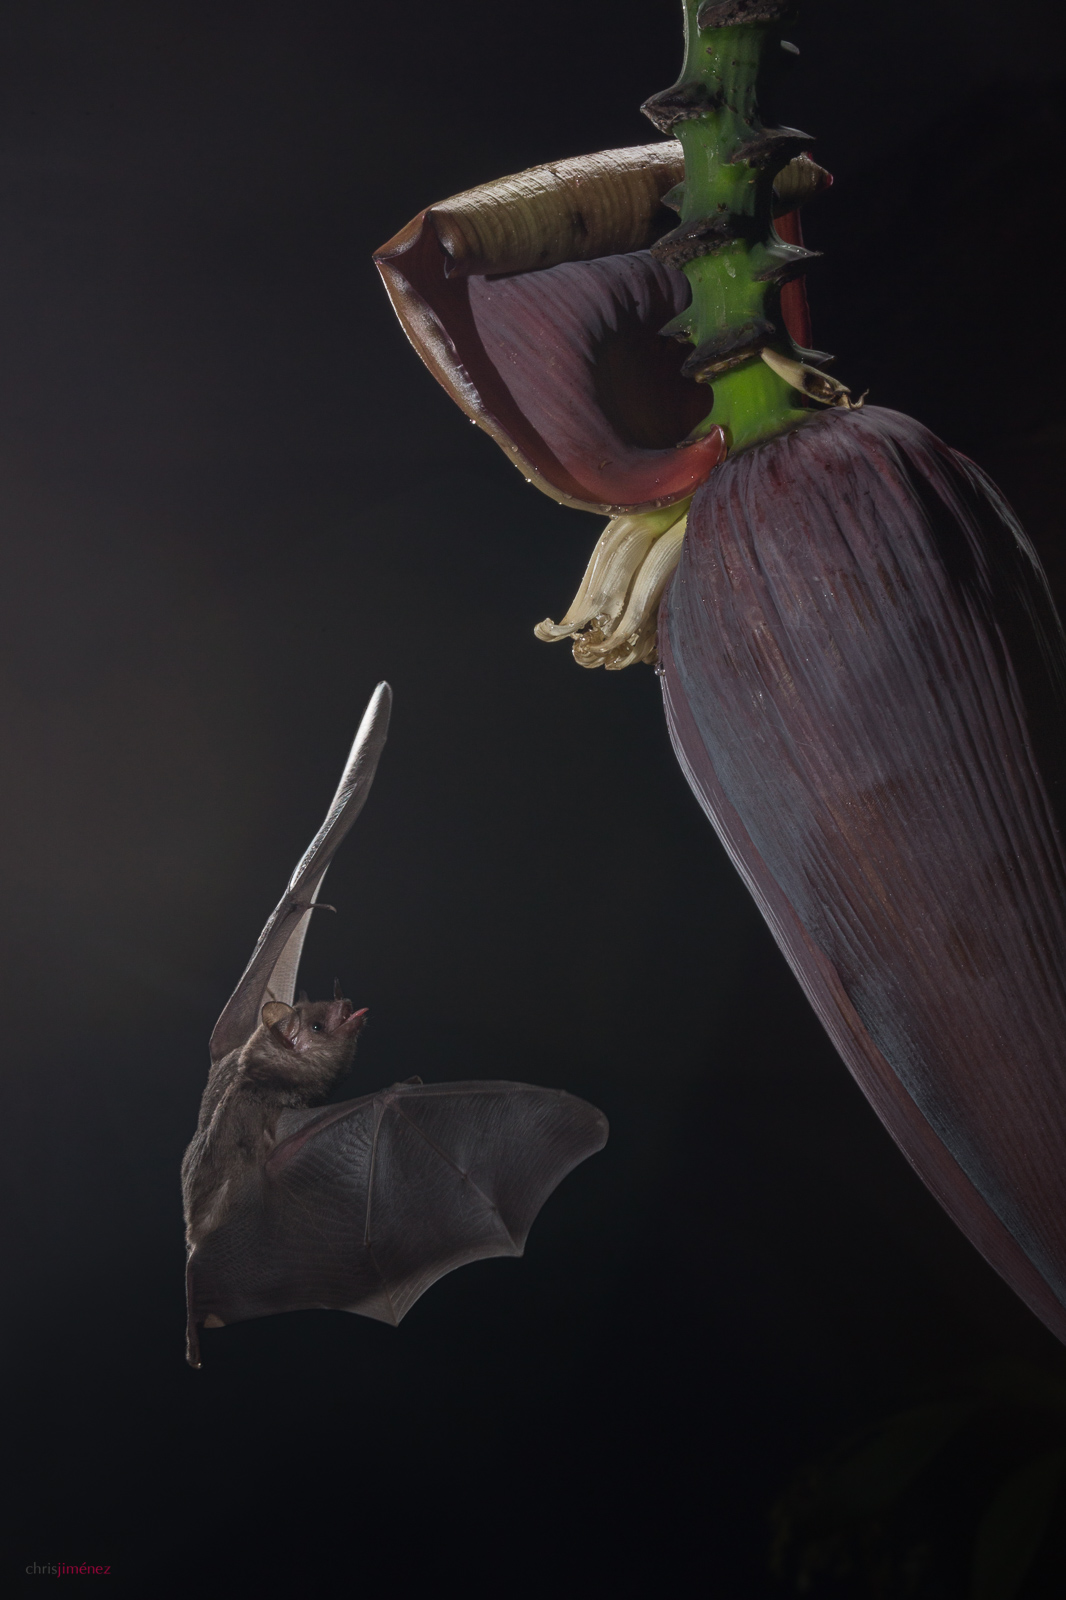 Common Long-tongued Bat(Glossophaga soricina) feeding from banana flowers, in San Jose Costa Rica